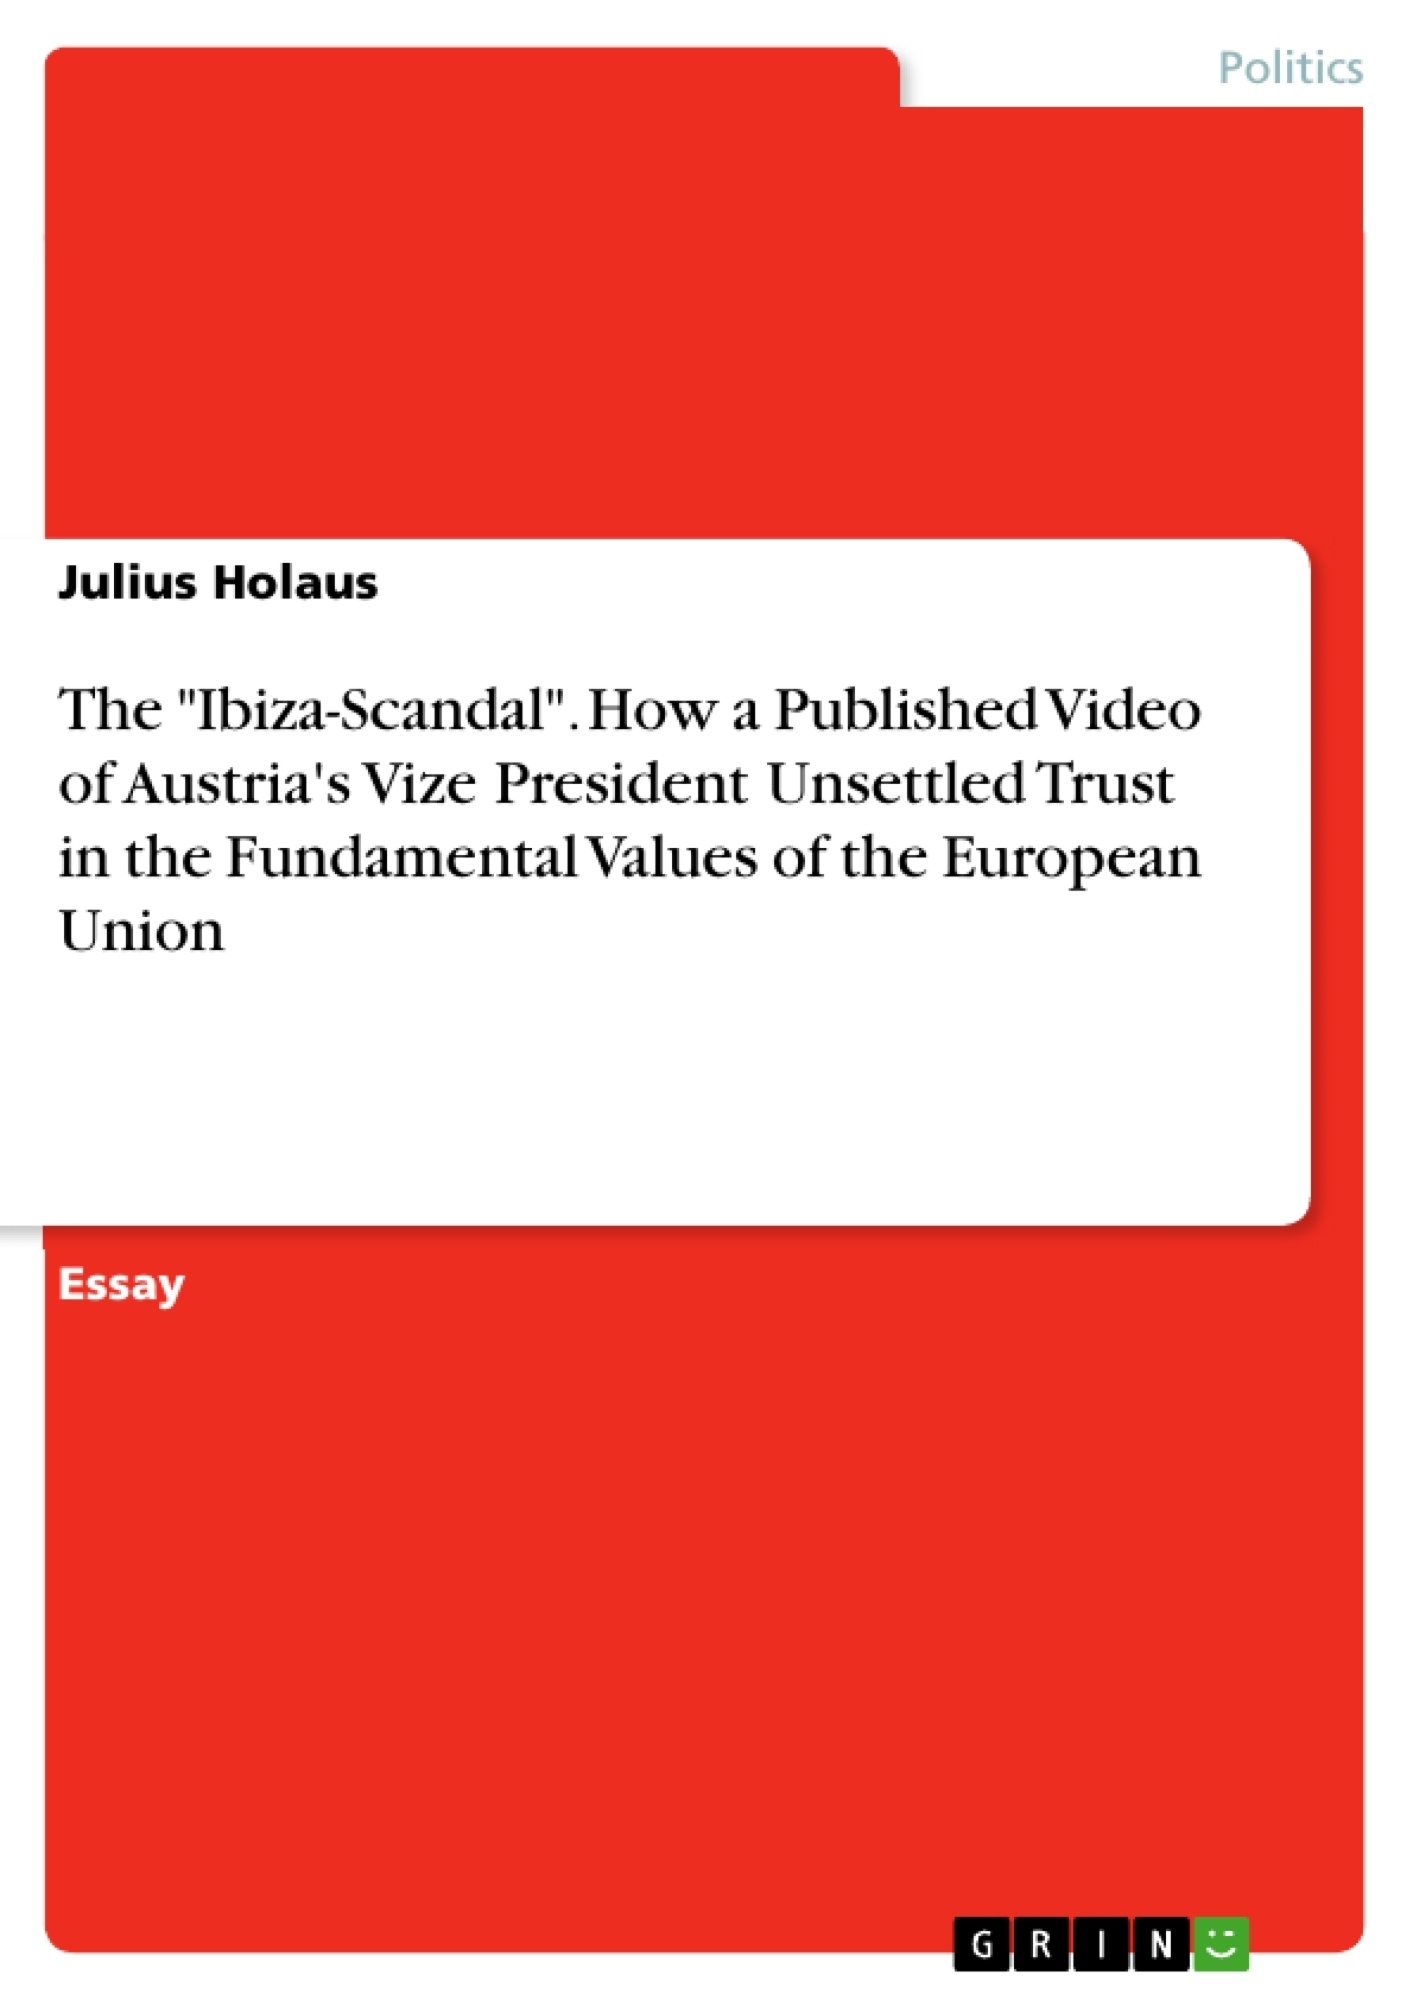 """Title: The """"Ibiza-Scandal"""". How a Published Video of Austria's Vize President Unsettled Trust in the Fundamental Values of the European Union"""